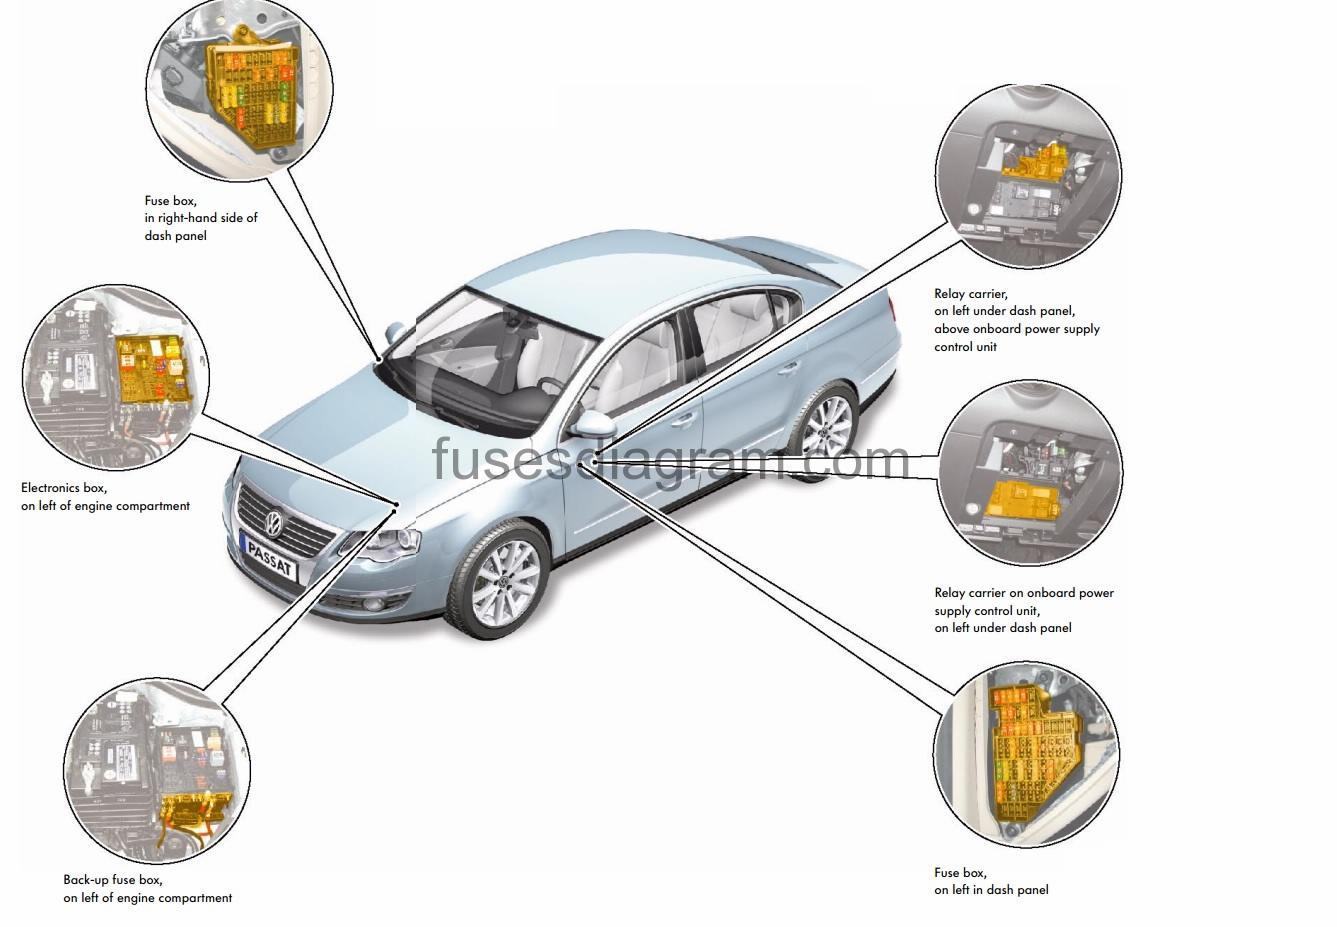 Vw Passat Fuse Box Location Wiring Diagram System Chin Locate A Chin Locate A Ediliadesign It